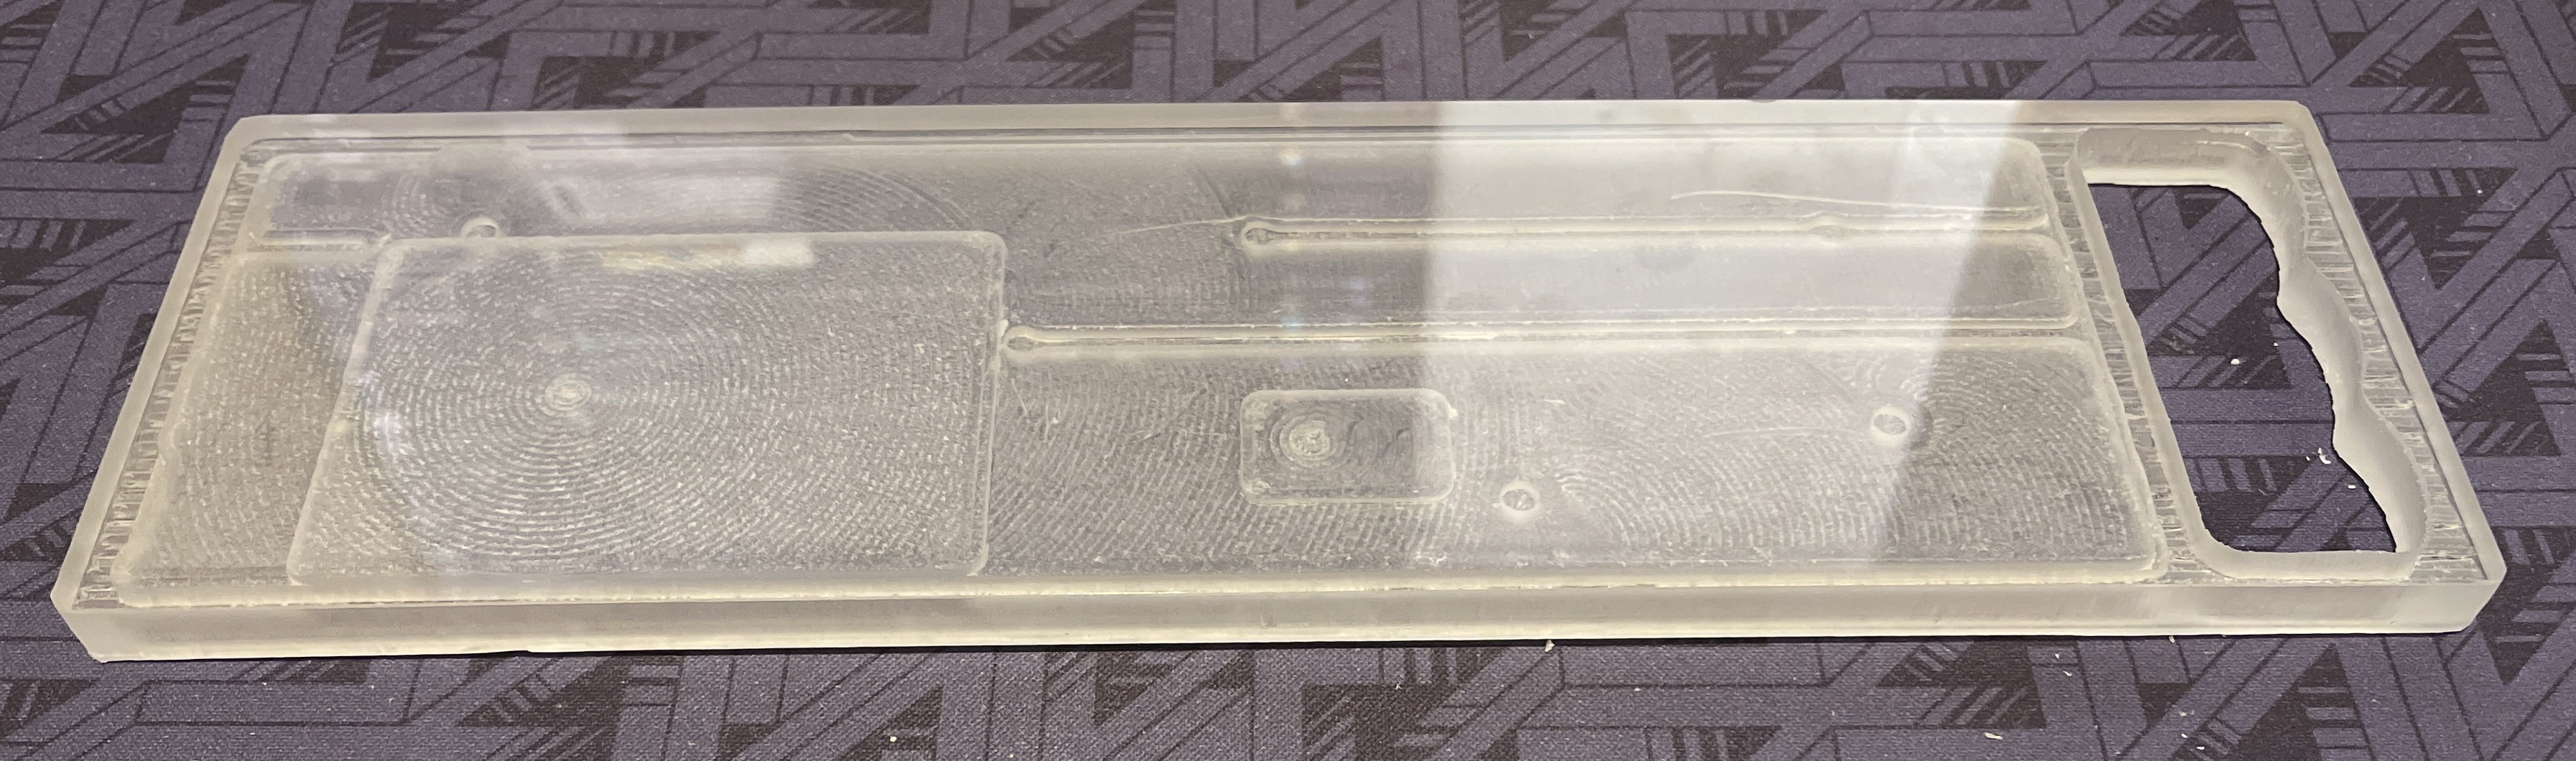 Bottom view of a polycarbonate Rackmount prototype showing cutouts for battery well and Bluetooth module